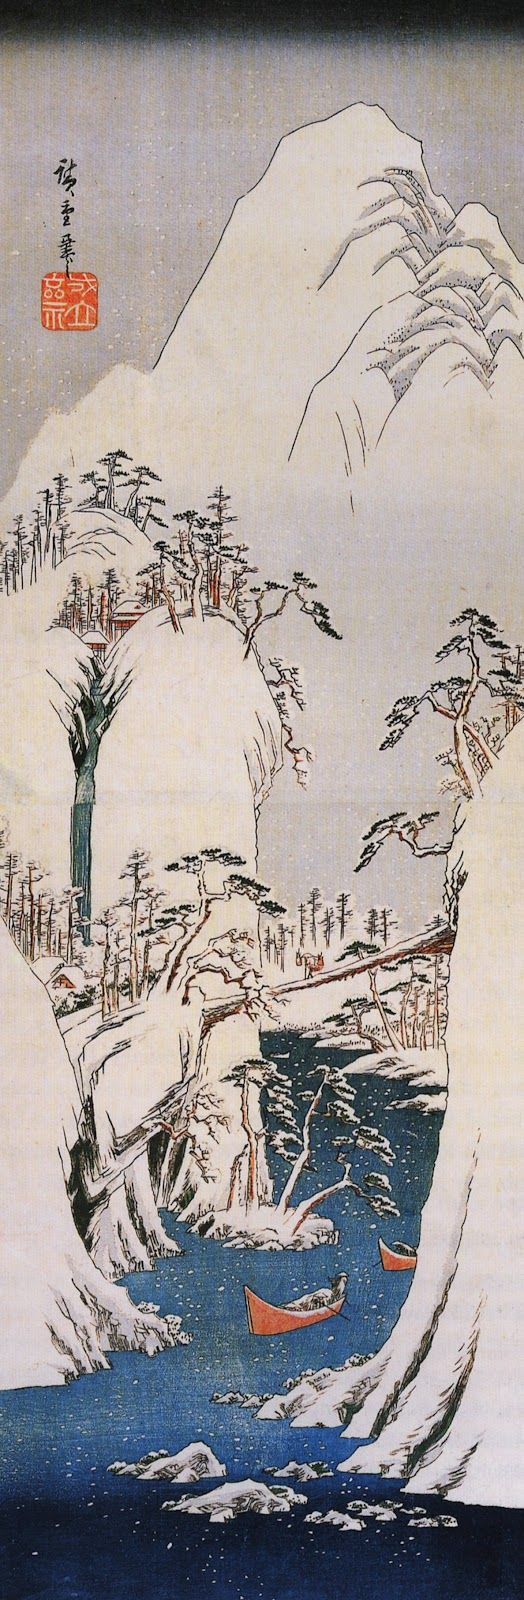 Snowy Gorge by Utagawa Hiroshige  (Japanese, 1797–1858)  Period: Edo period (1615–1868) Culture: Japan Medium: Polychrome woodblock print; ink and color on paper